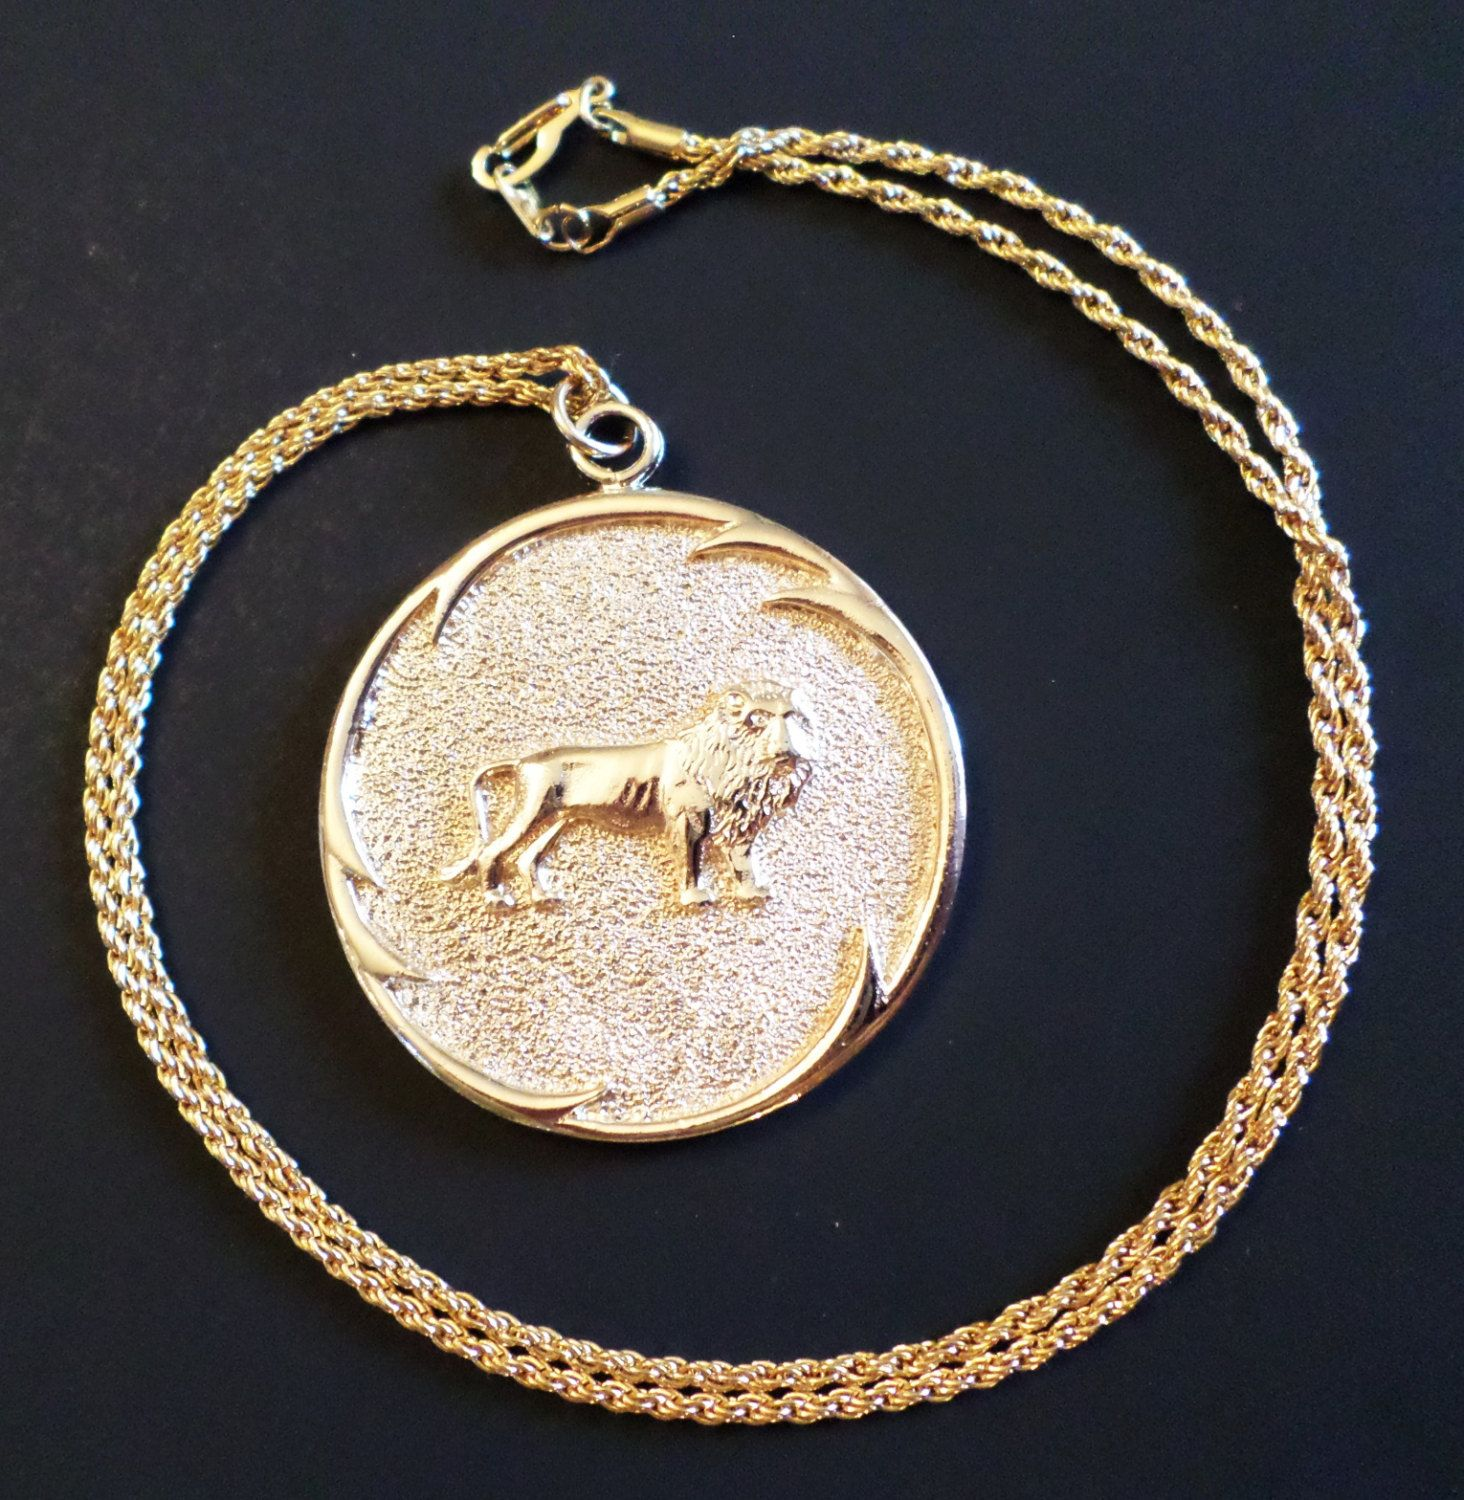 pendants euphanasia gold watch king medallion hip hop ice necklace